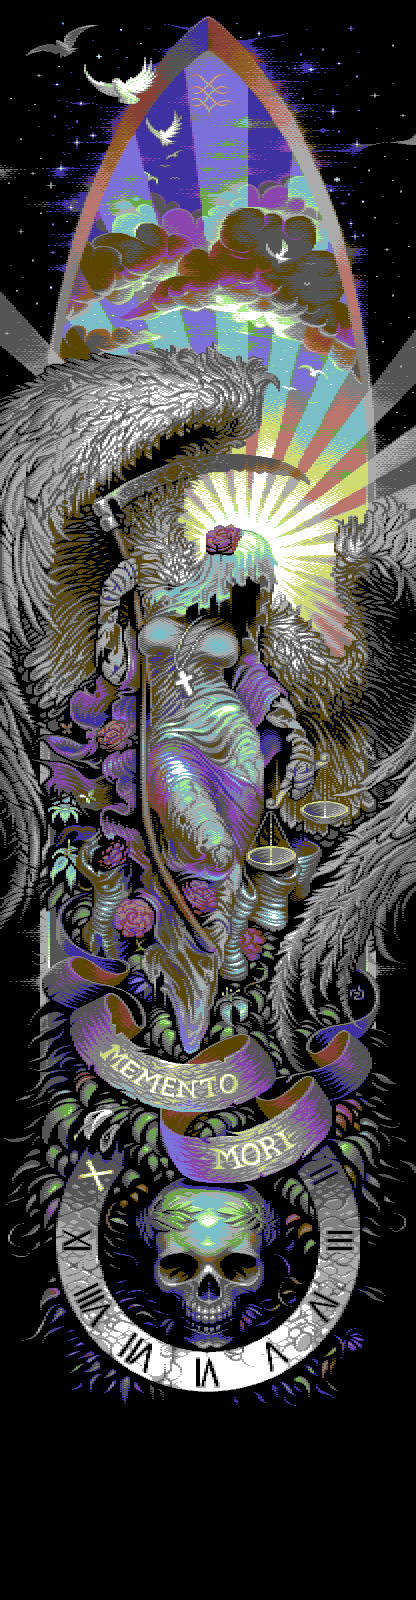 c64_mementoMori-art1-full